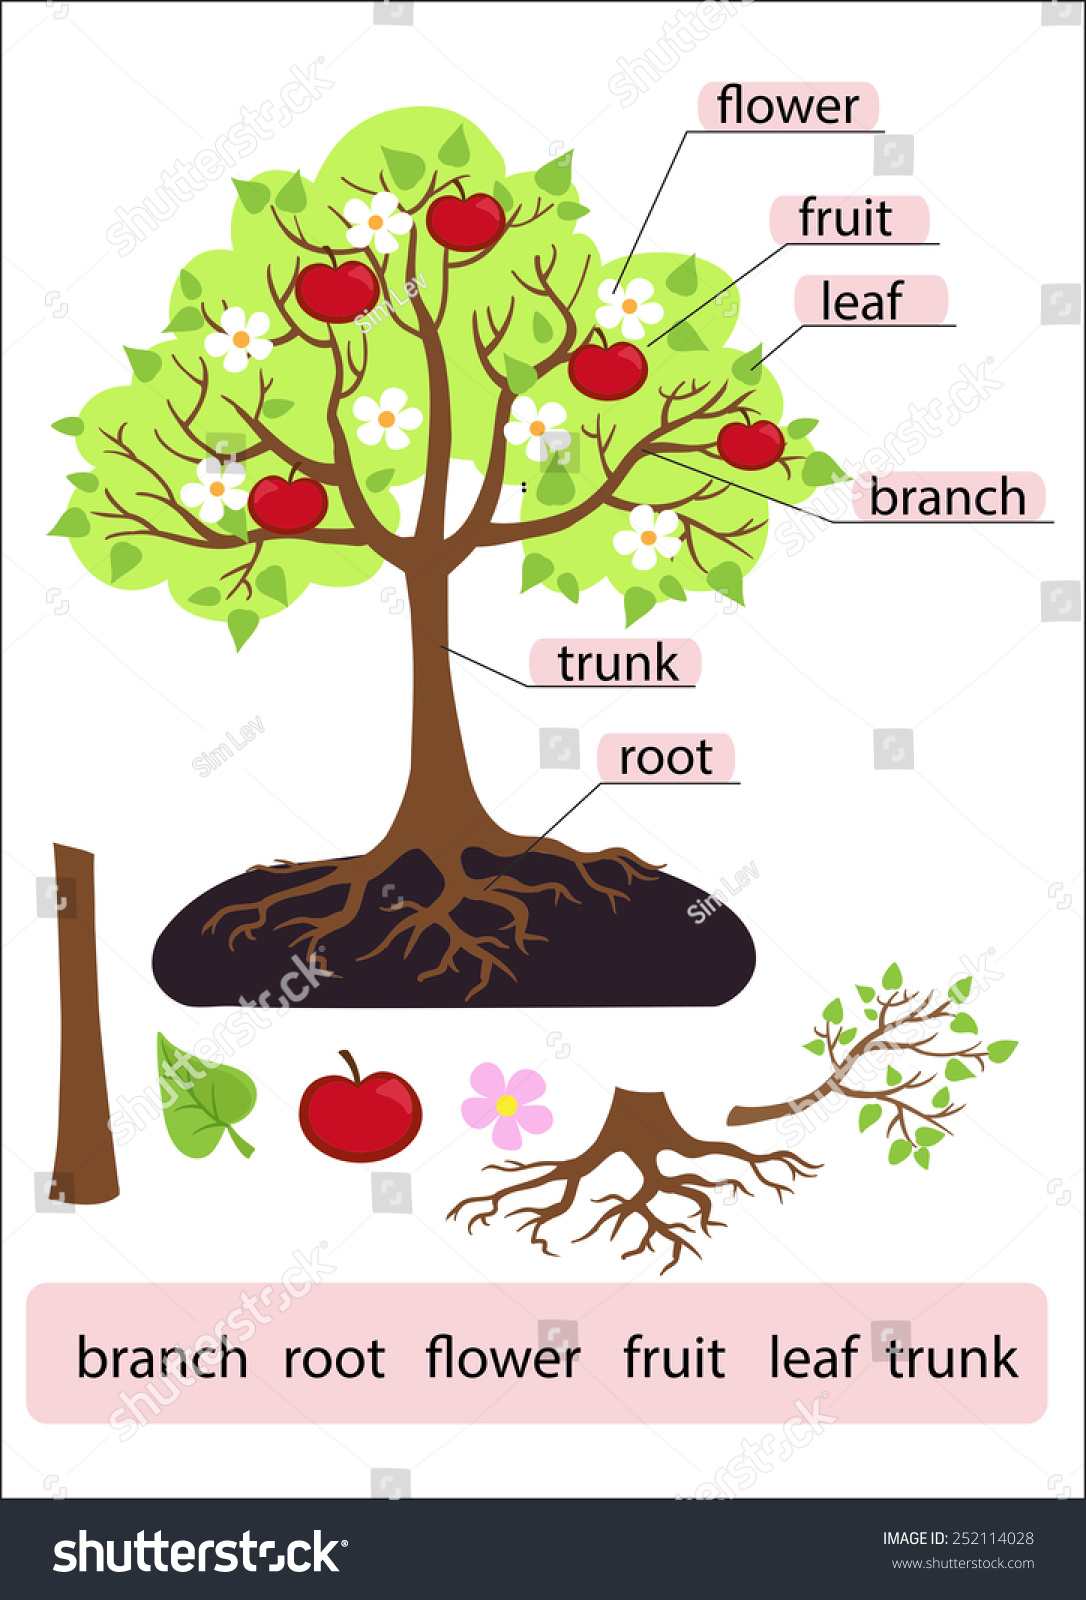 Parts Treeclipart Tree Structure Trunk Root Stock Vector 252114028